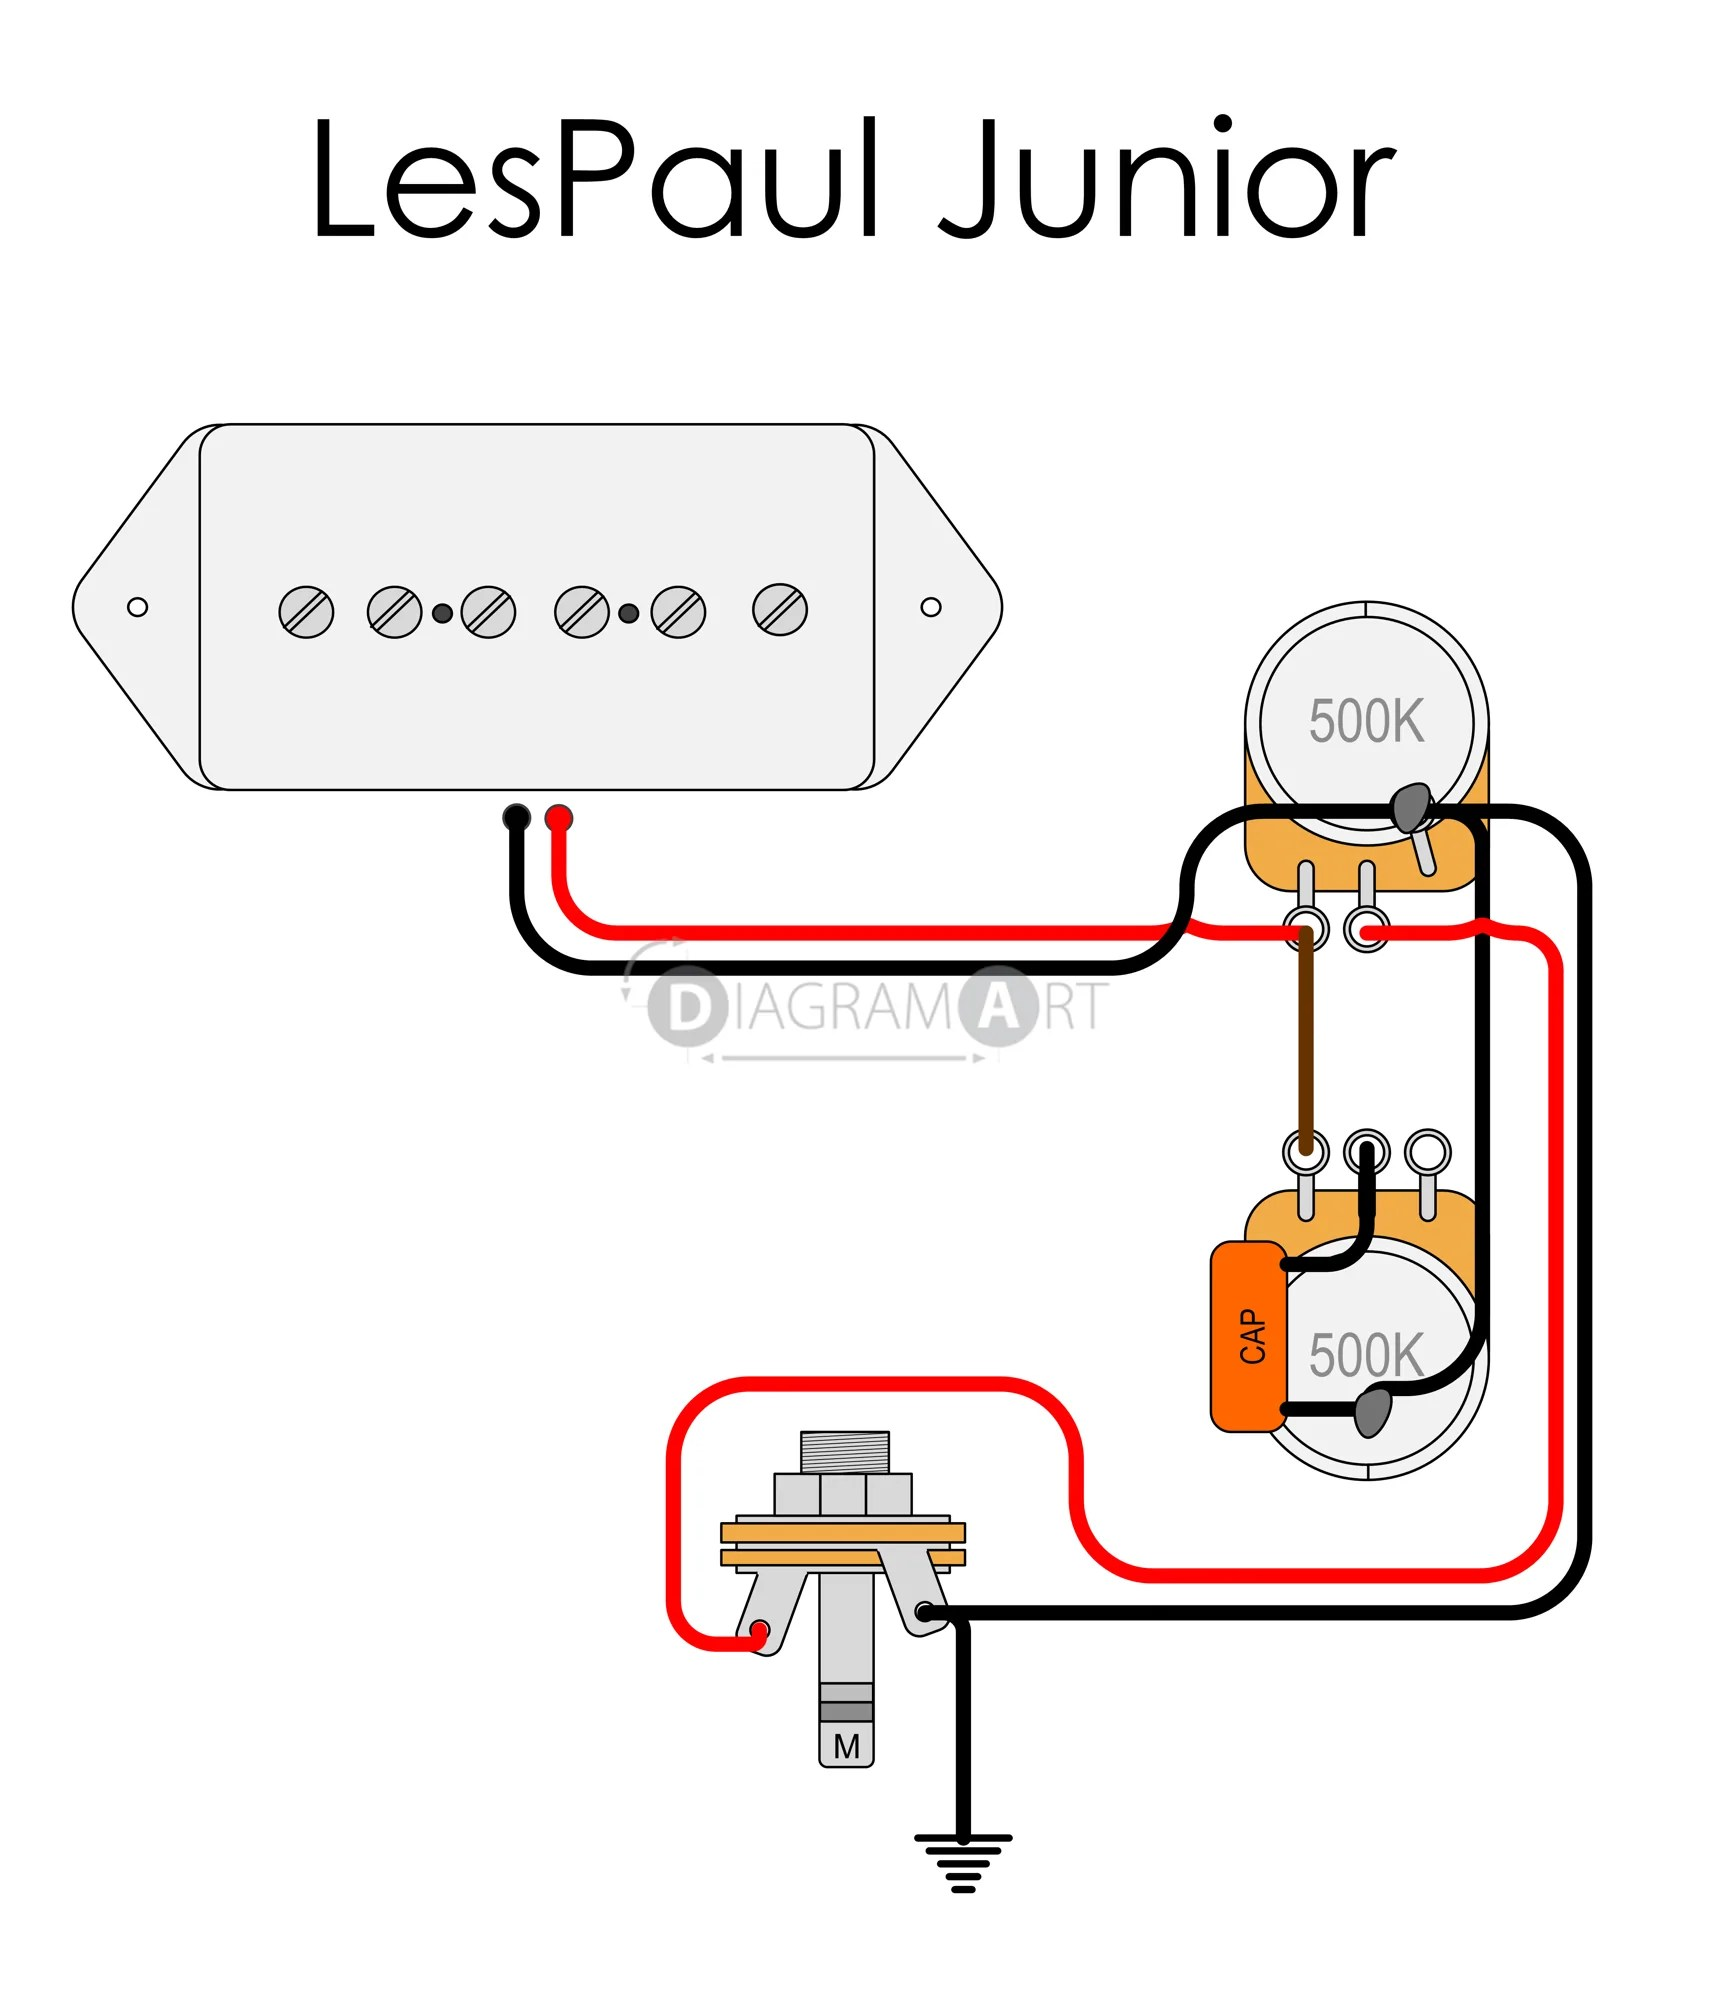 hight resolution of guitar wiring circuit diagram wiring diagram database the guitar wiring blog diagrams and tips gibson les source gibson les paul toggle switch